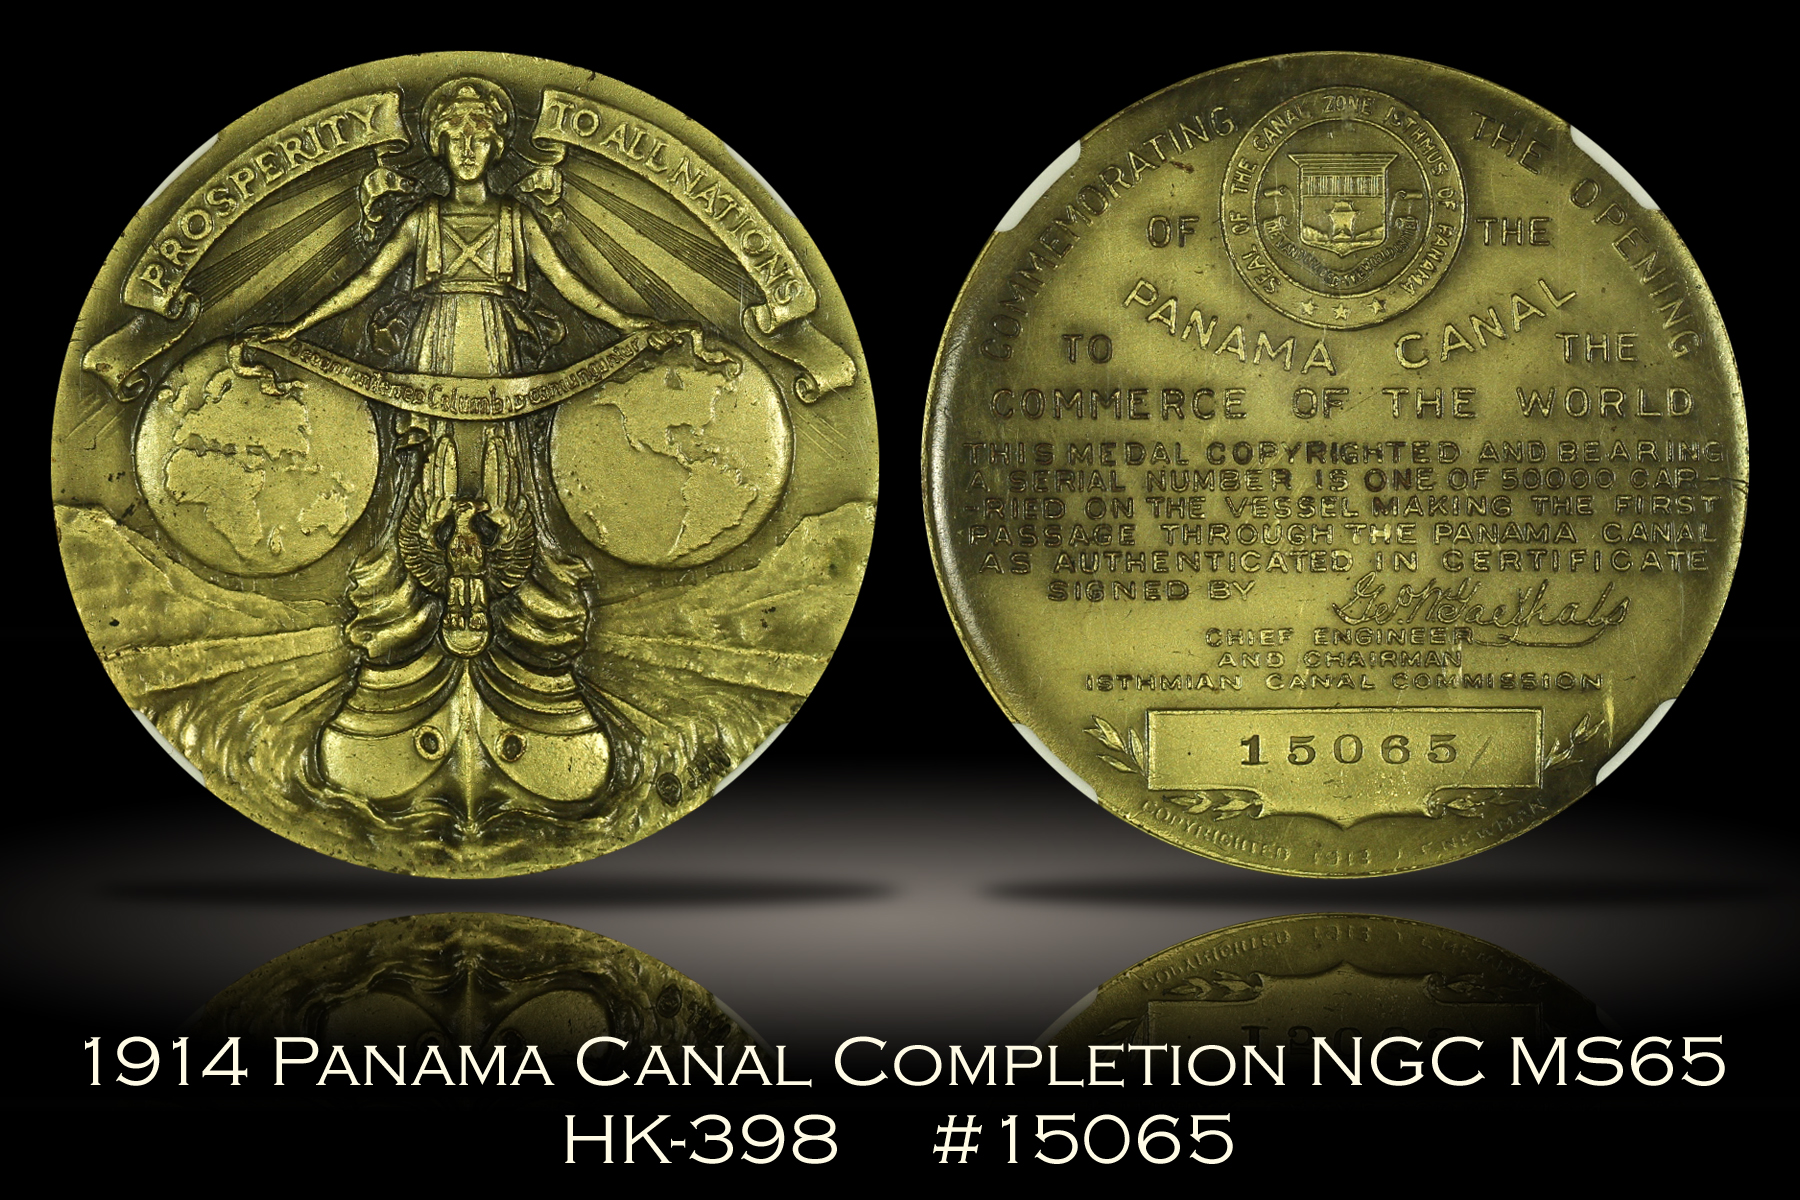 1914 Panama Canal Completion Medal HK-398 NGC MS65